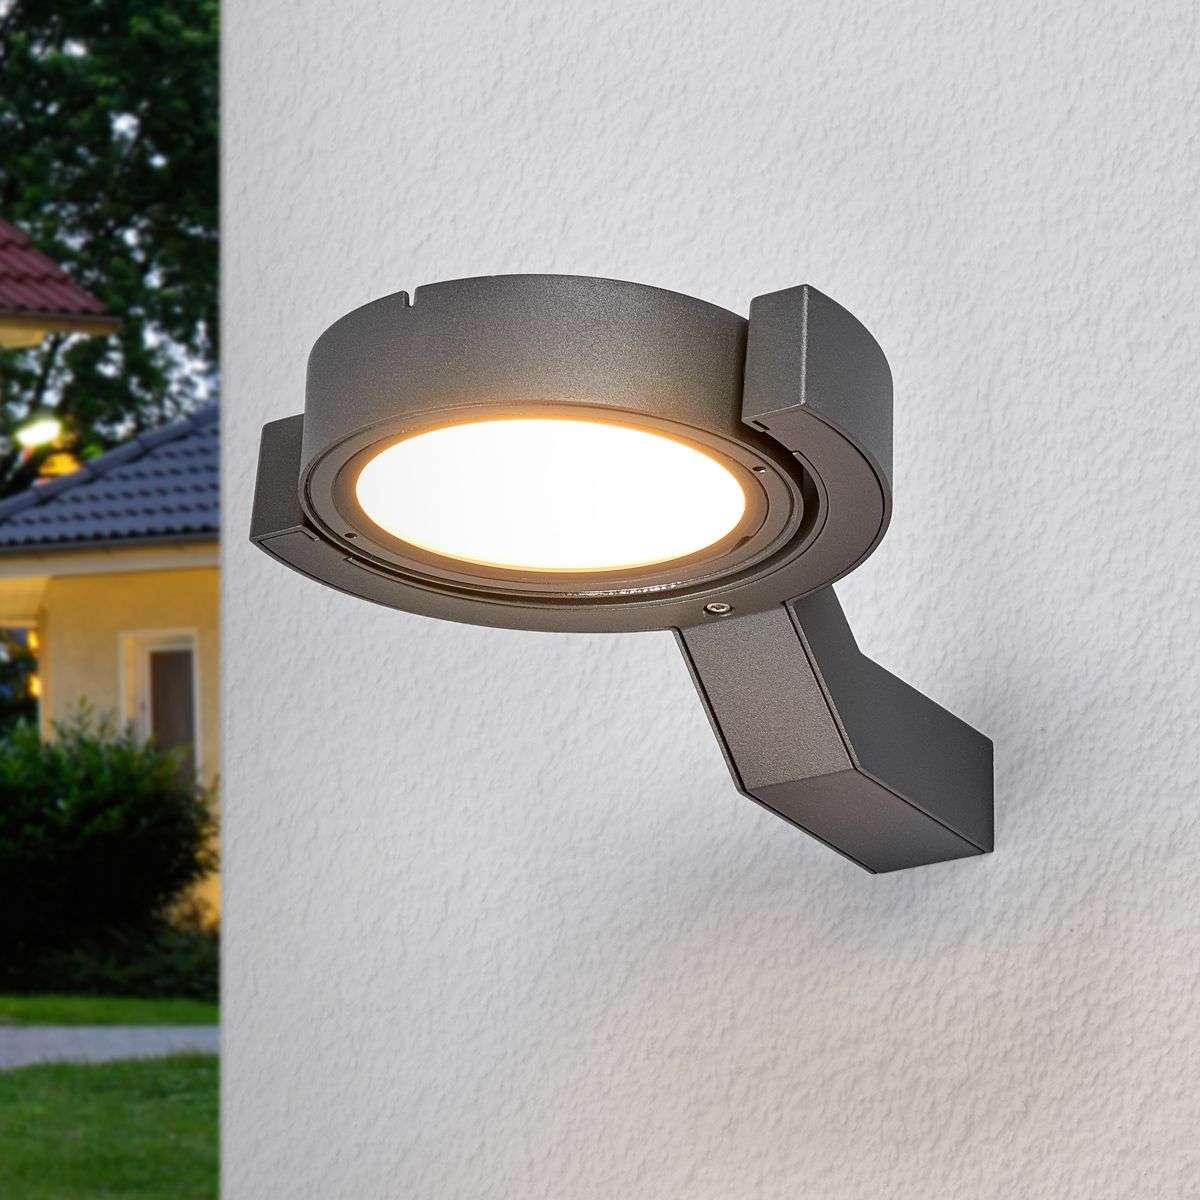 Isita Adjustable LED Outdoor Wall Light 9616093 31